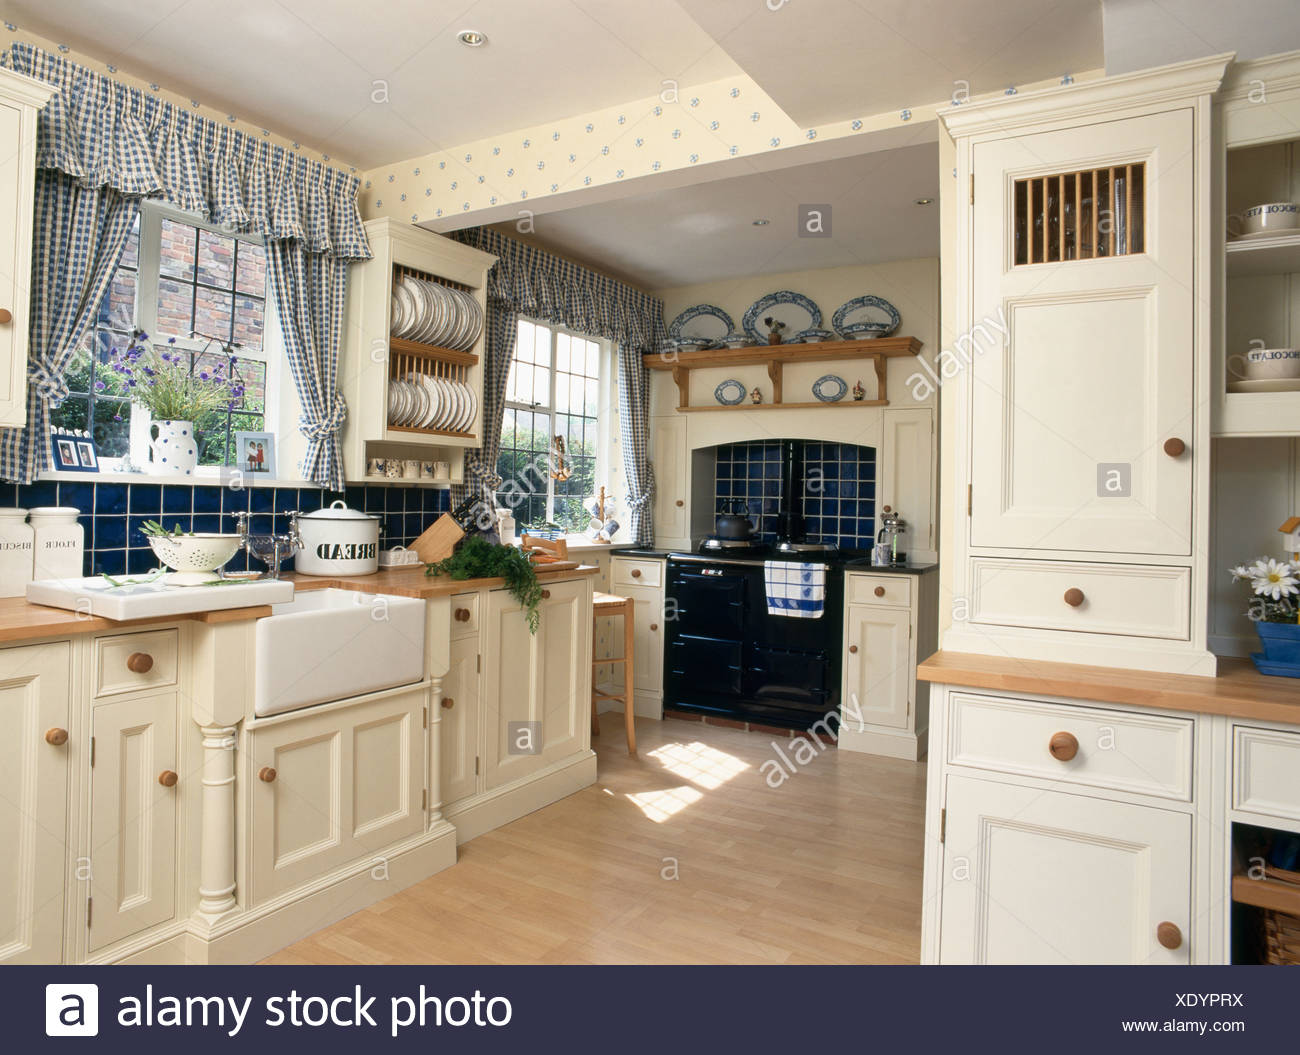 Blue Checked Curtains On Window In Country Kitchen With Fitted Cream Units And Black Range Oven Stock Photo Alamy